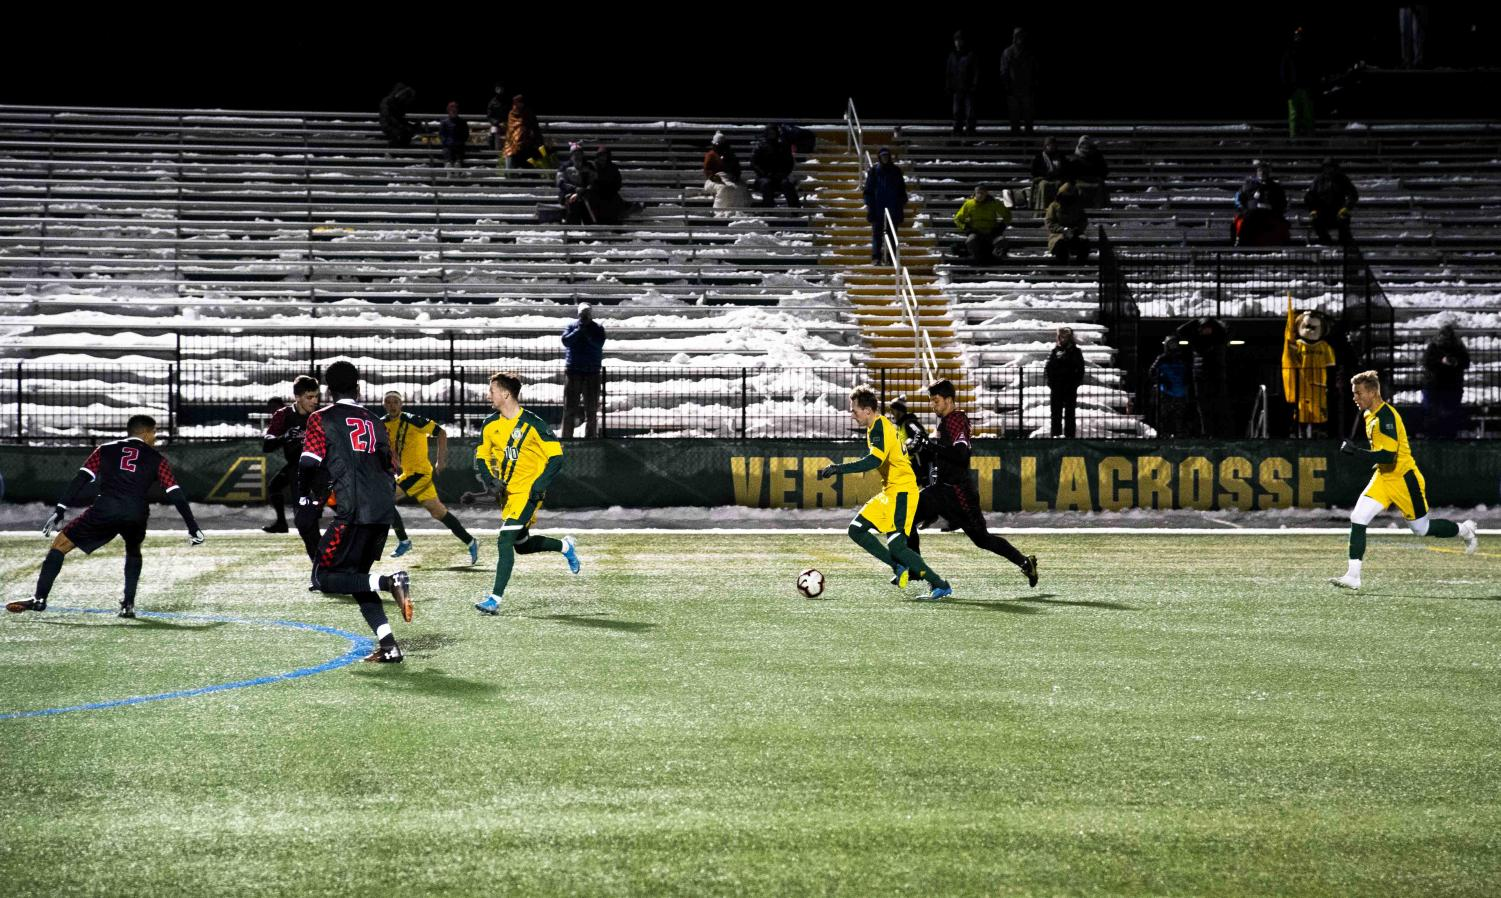 Men's soccer midfielder Joe Morrison, a sophomore, dribbles up the field, Nov. 13. The team lost 3-2 in overtime to Hartford University, ending UVM's season.